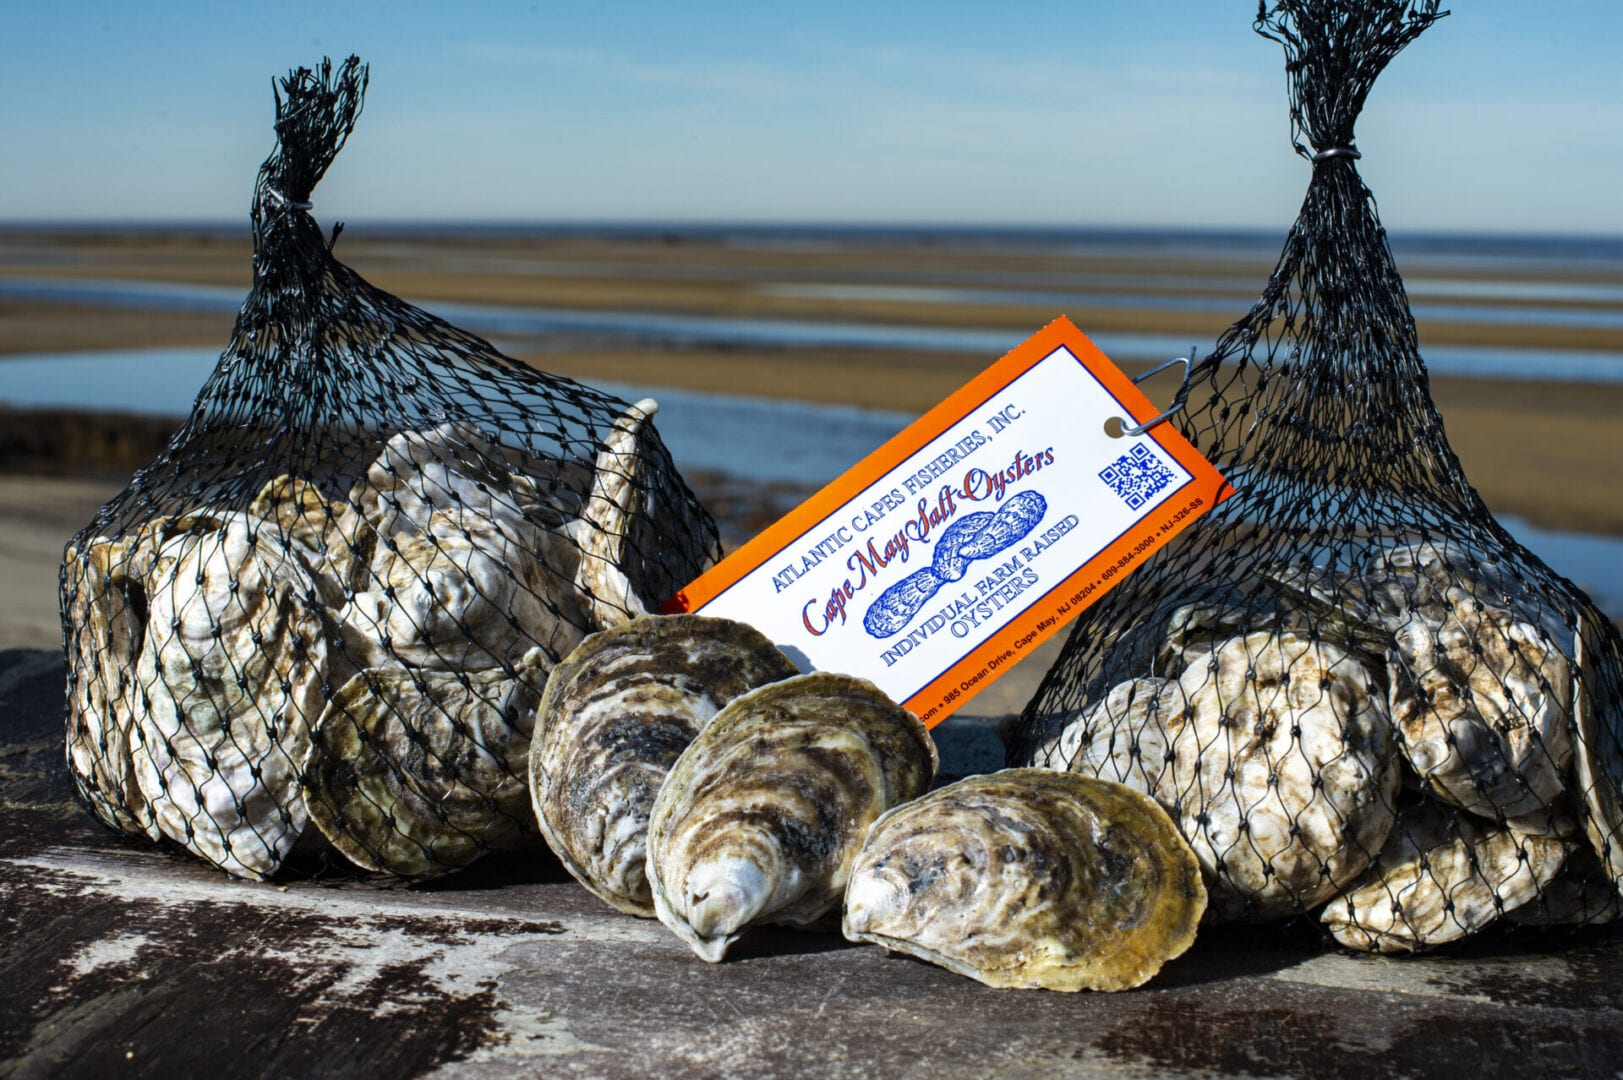 Cape May Salt Oysters Promotional